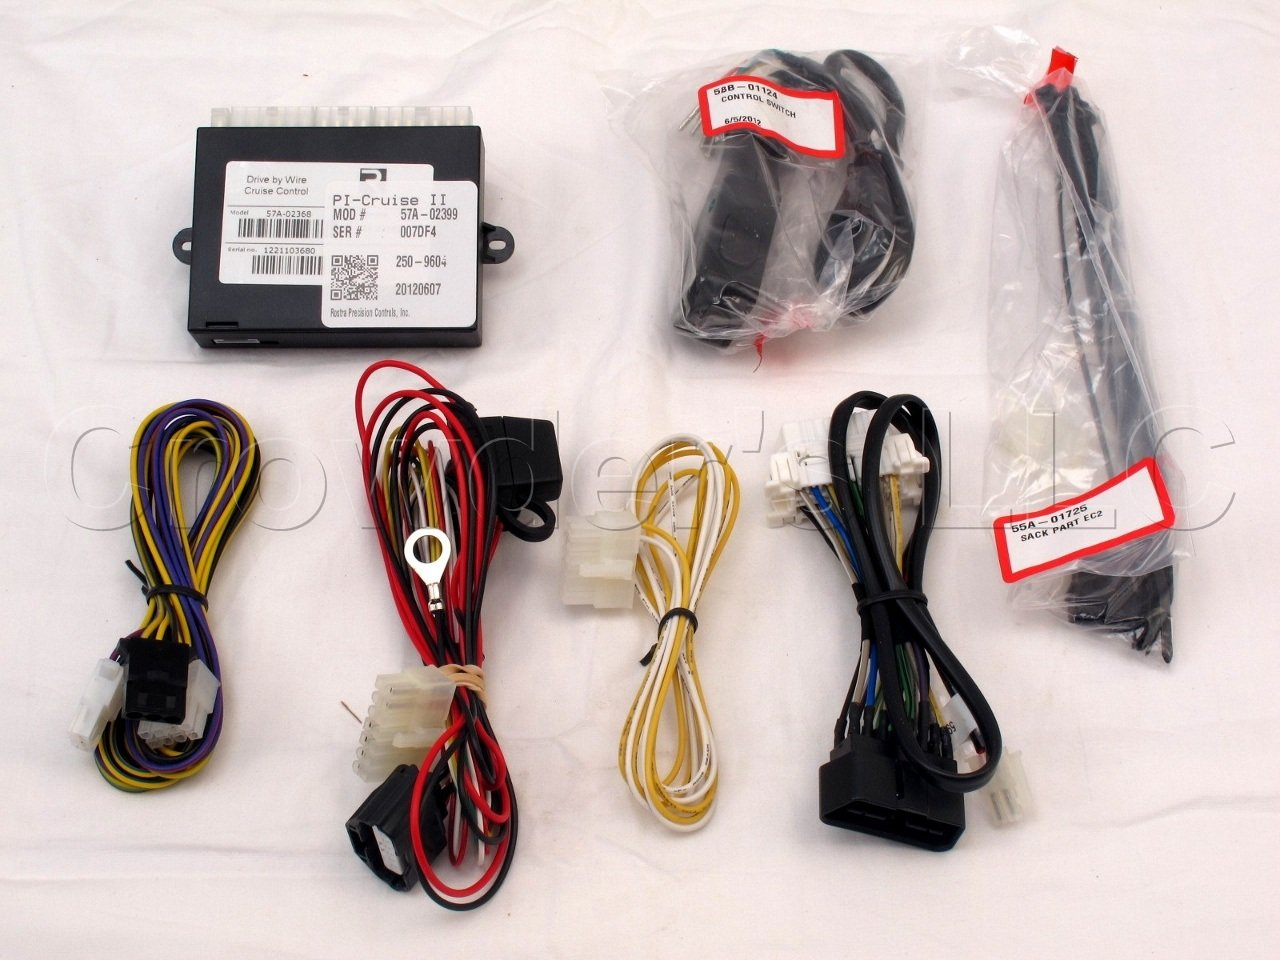 Rostra 250 9604 Complete Cruise Control Kit For Nissan Wiring Harness Sentra Automotive